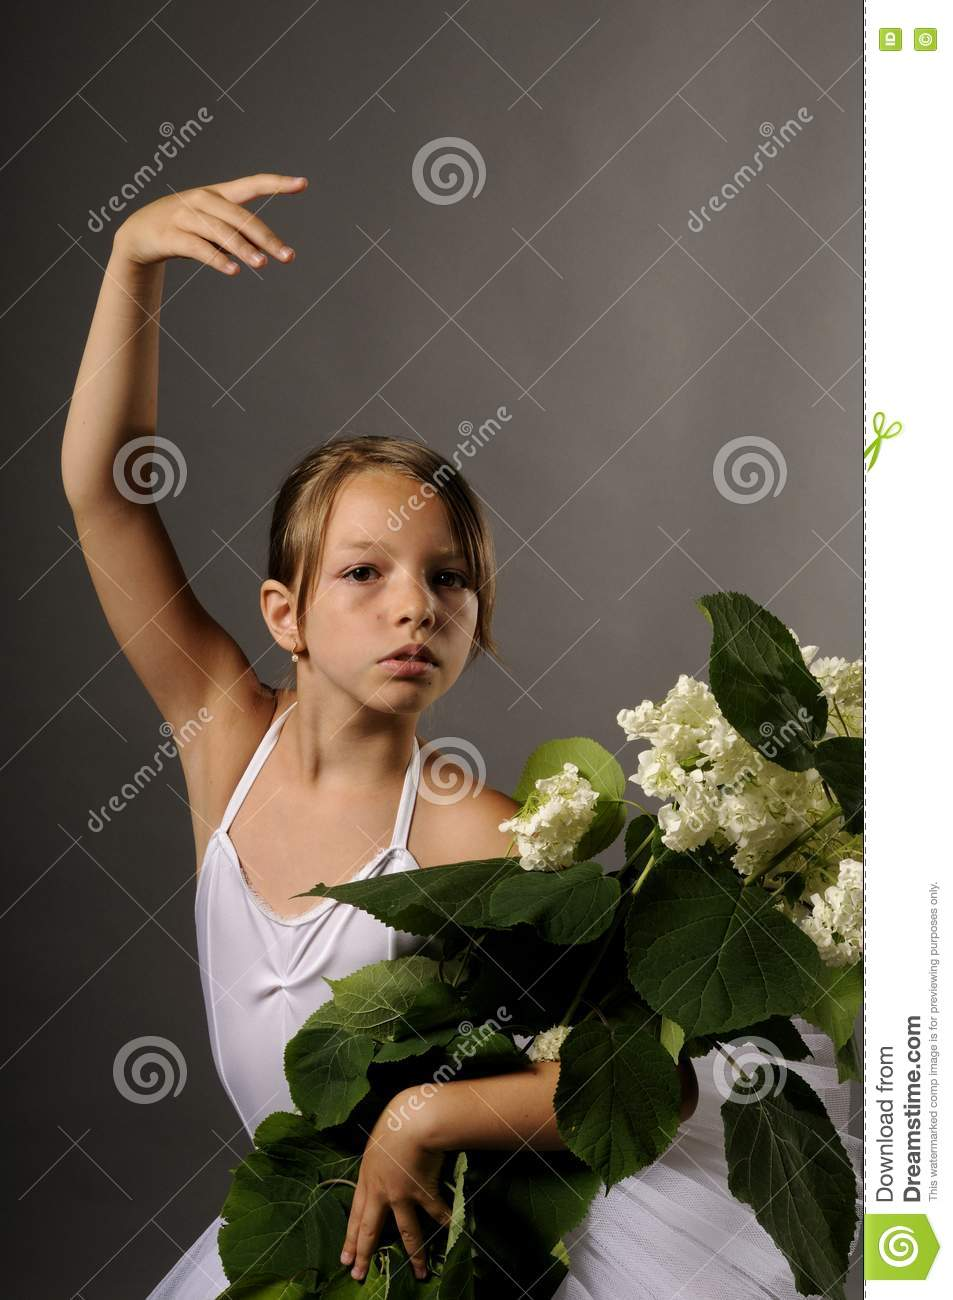 Ballerina with flowers